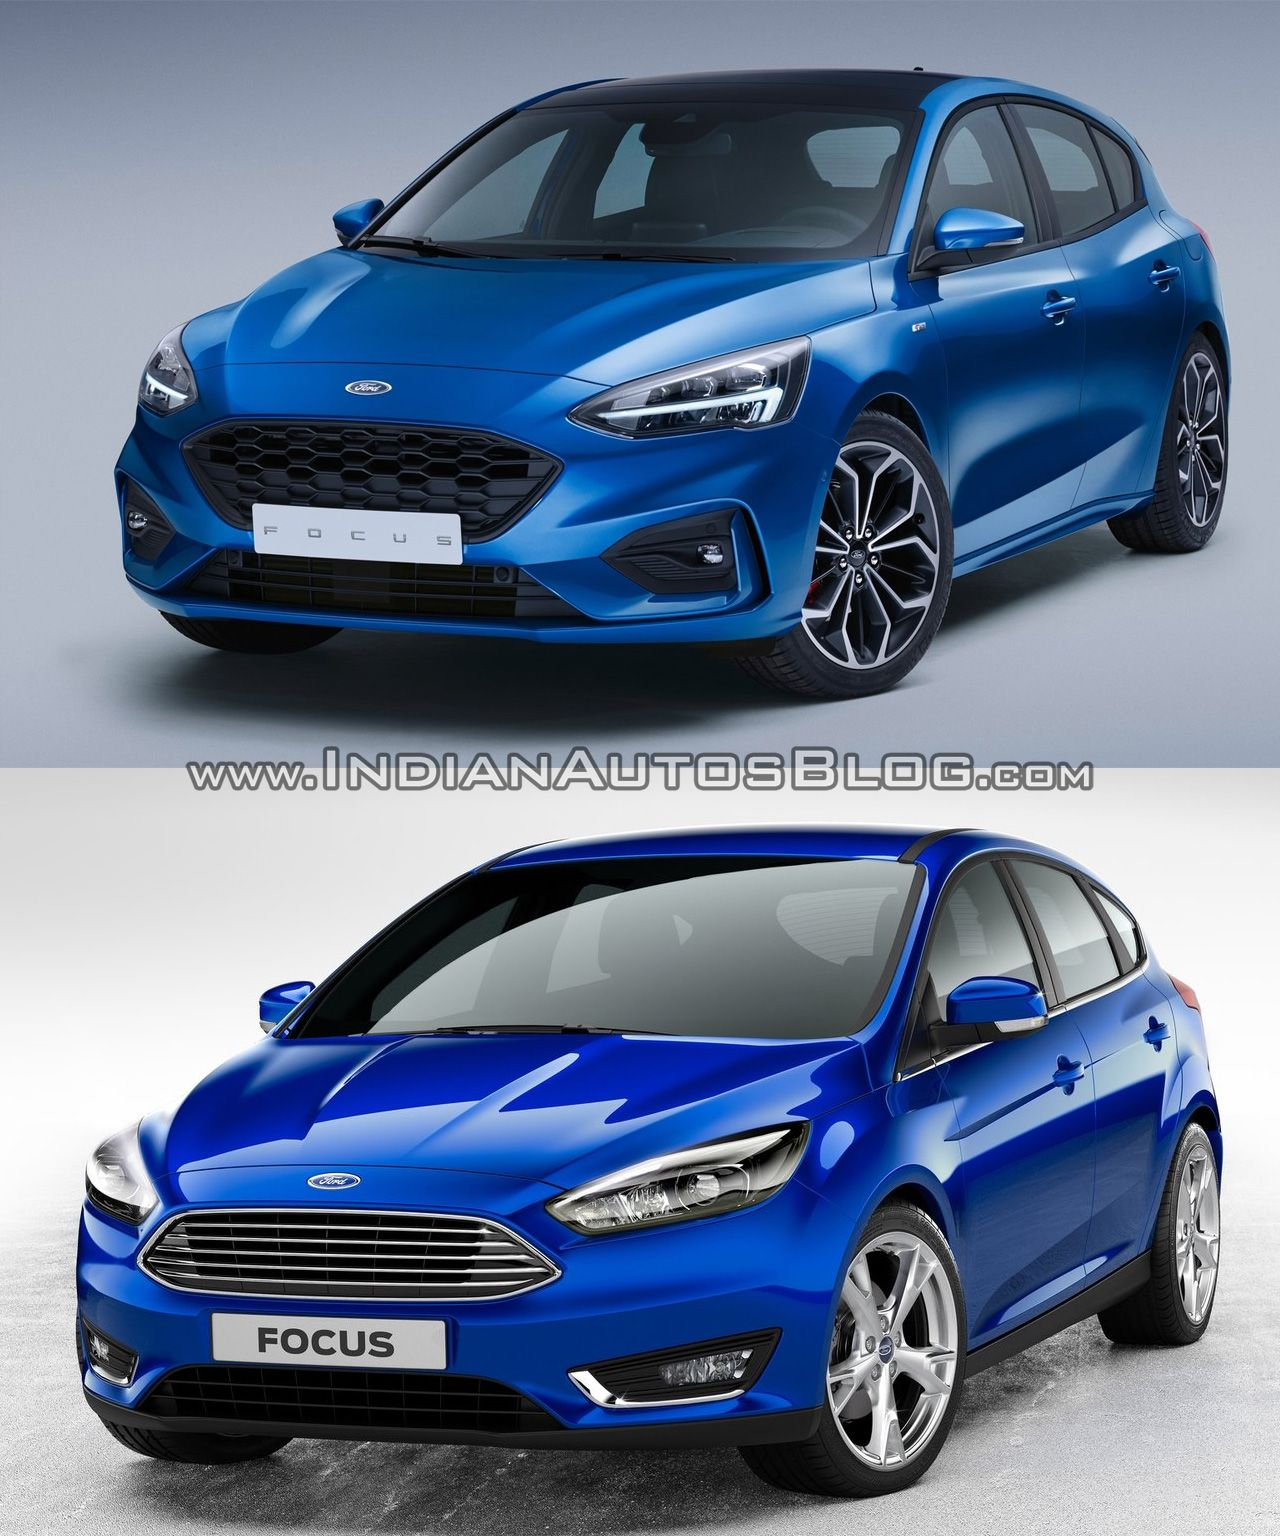 2018 Ford Focus Vs 2014 Ford Focus Old Vs New Car New Ford